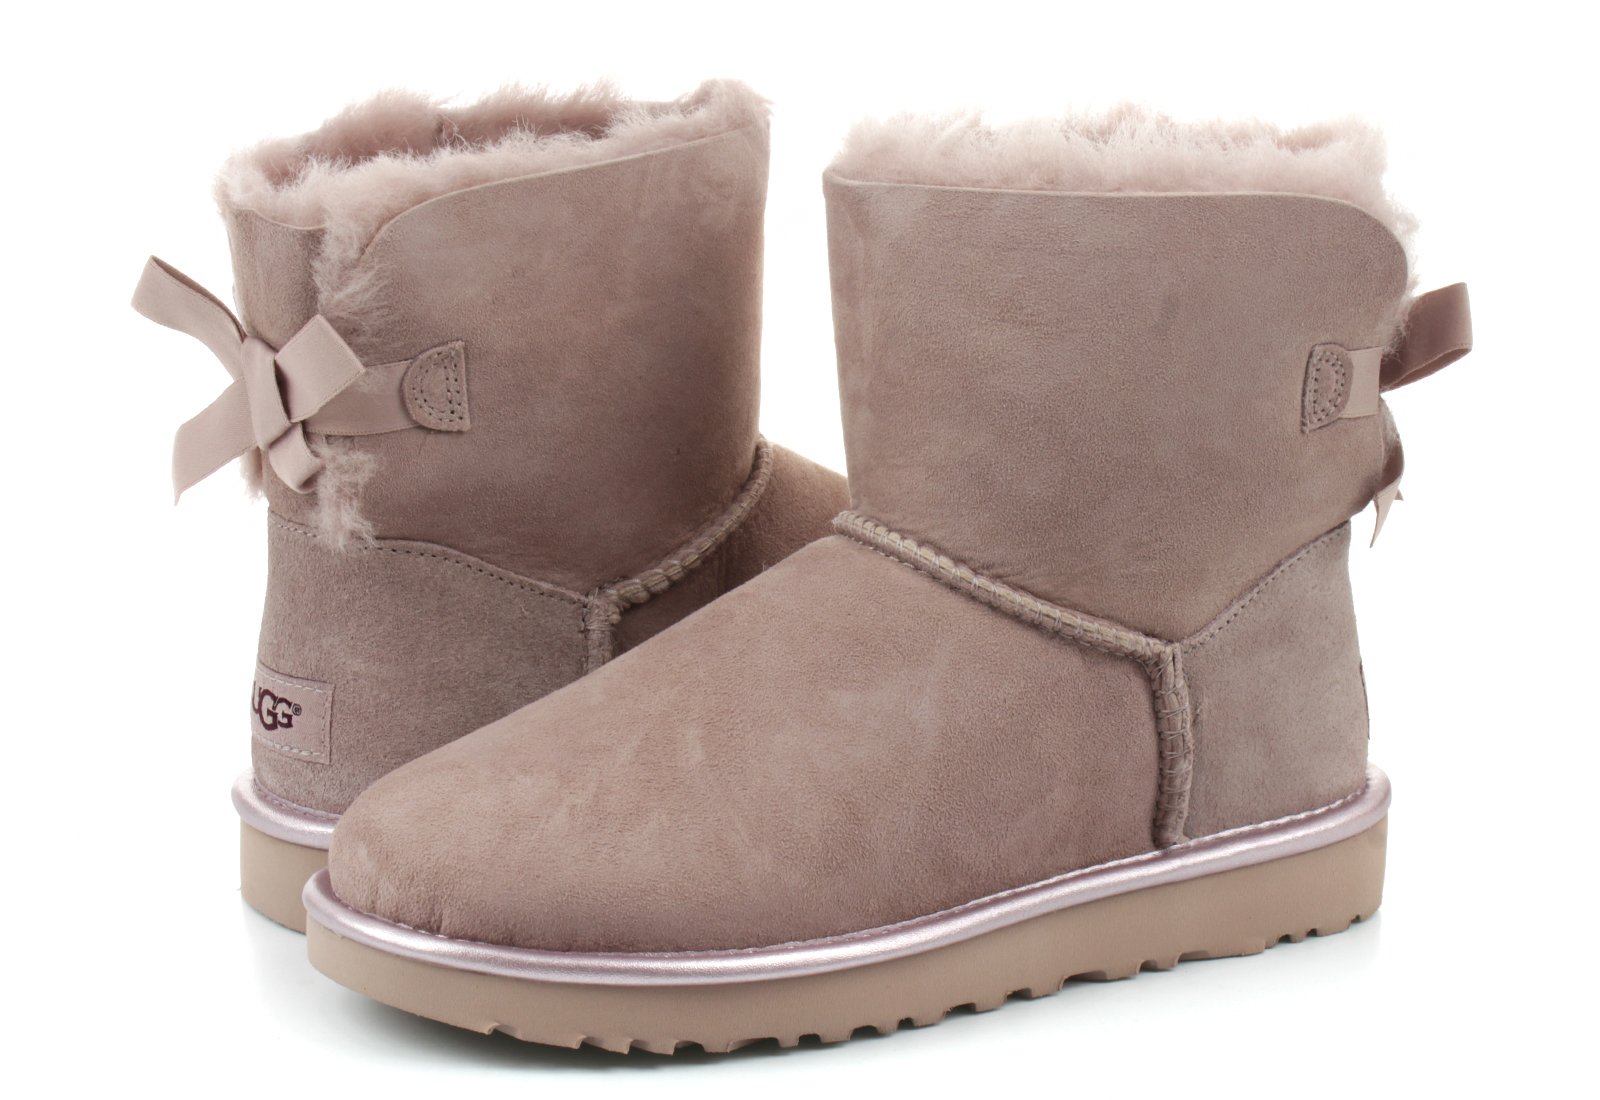 Ugg Boots Mini Bailey Bow Ii Metallic 1019032 Dus